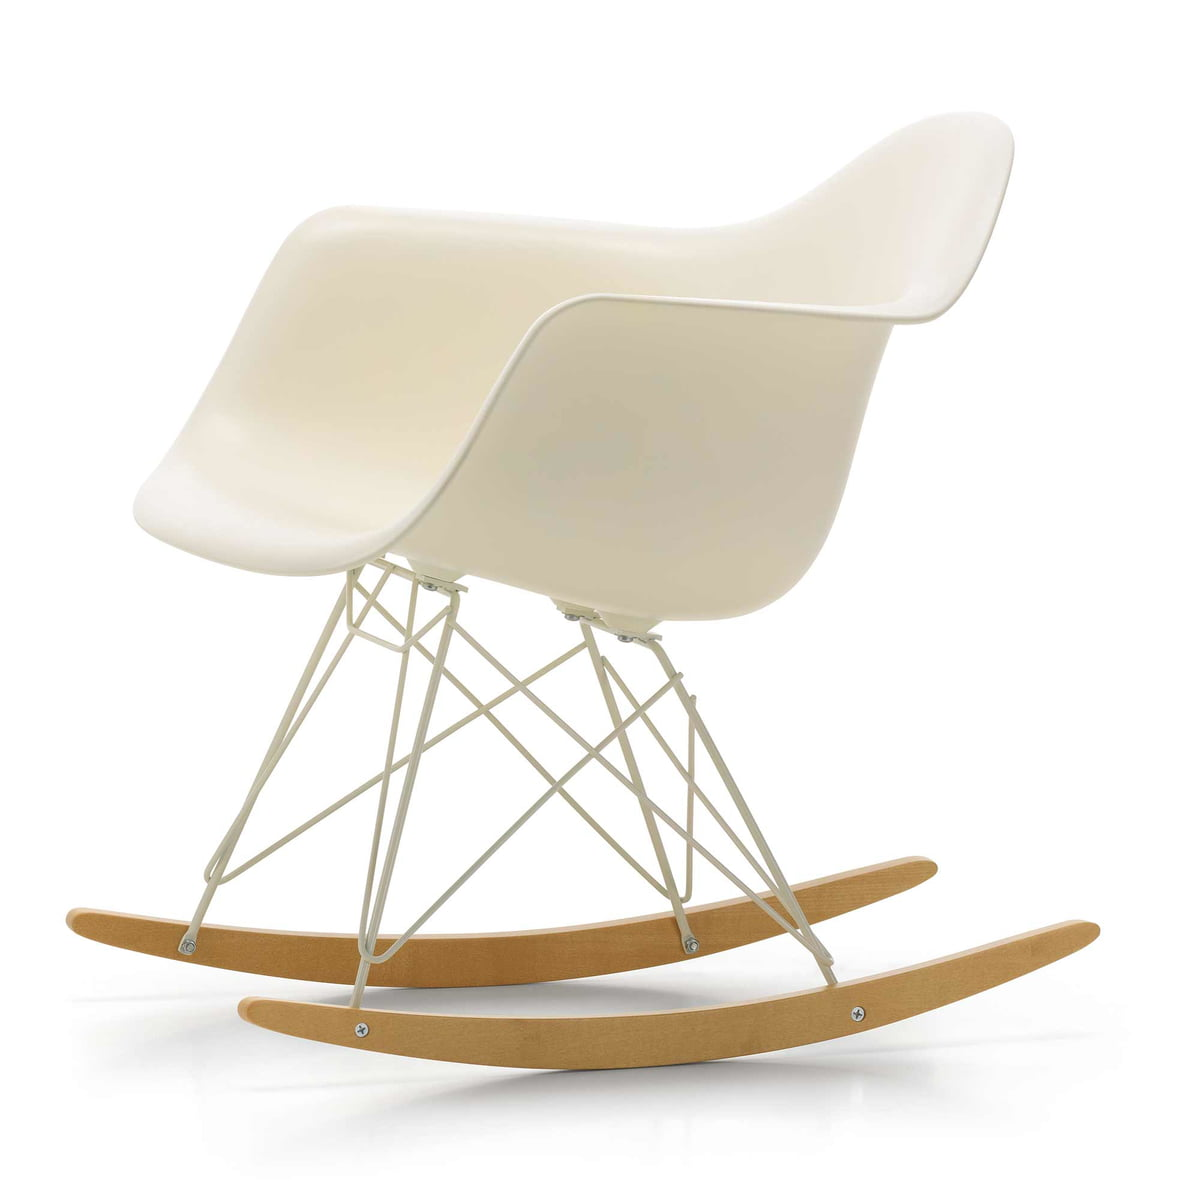 Eames rar schaukelstuhl von vitra connox shop for Vitra eames plastic armchair replica